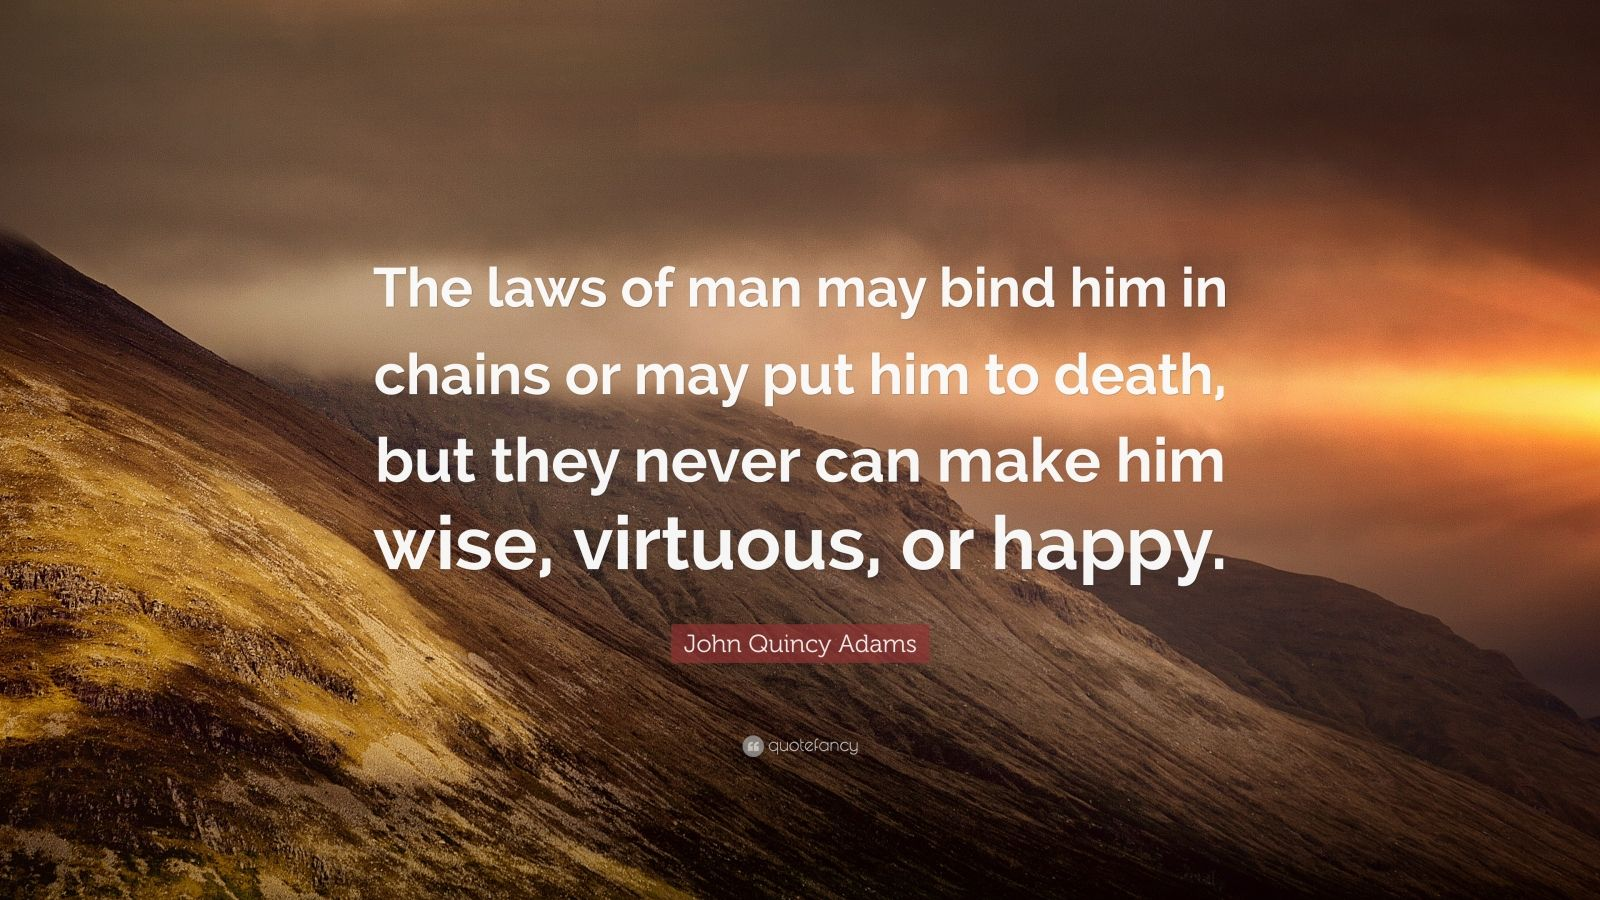 "John Quincy Adams Quote: ""The laws of man may bind him in chains or may put him to death, but they never can make him wise, virtuous, or happy."""